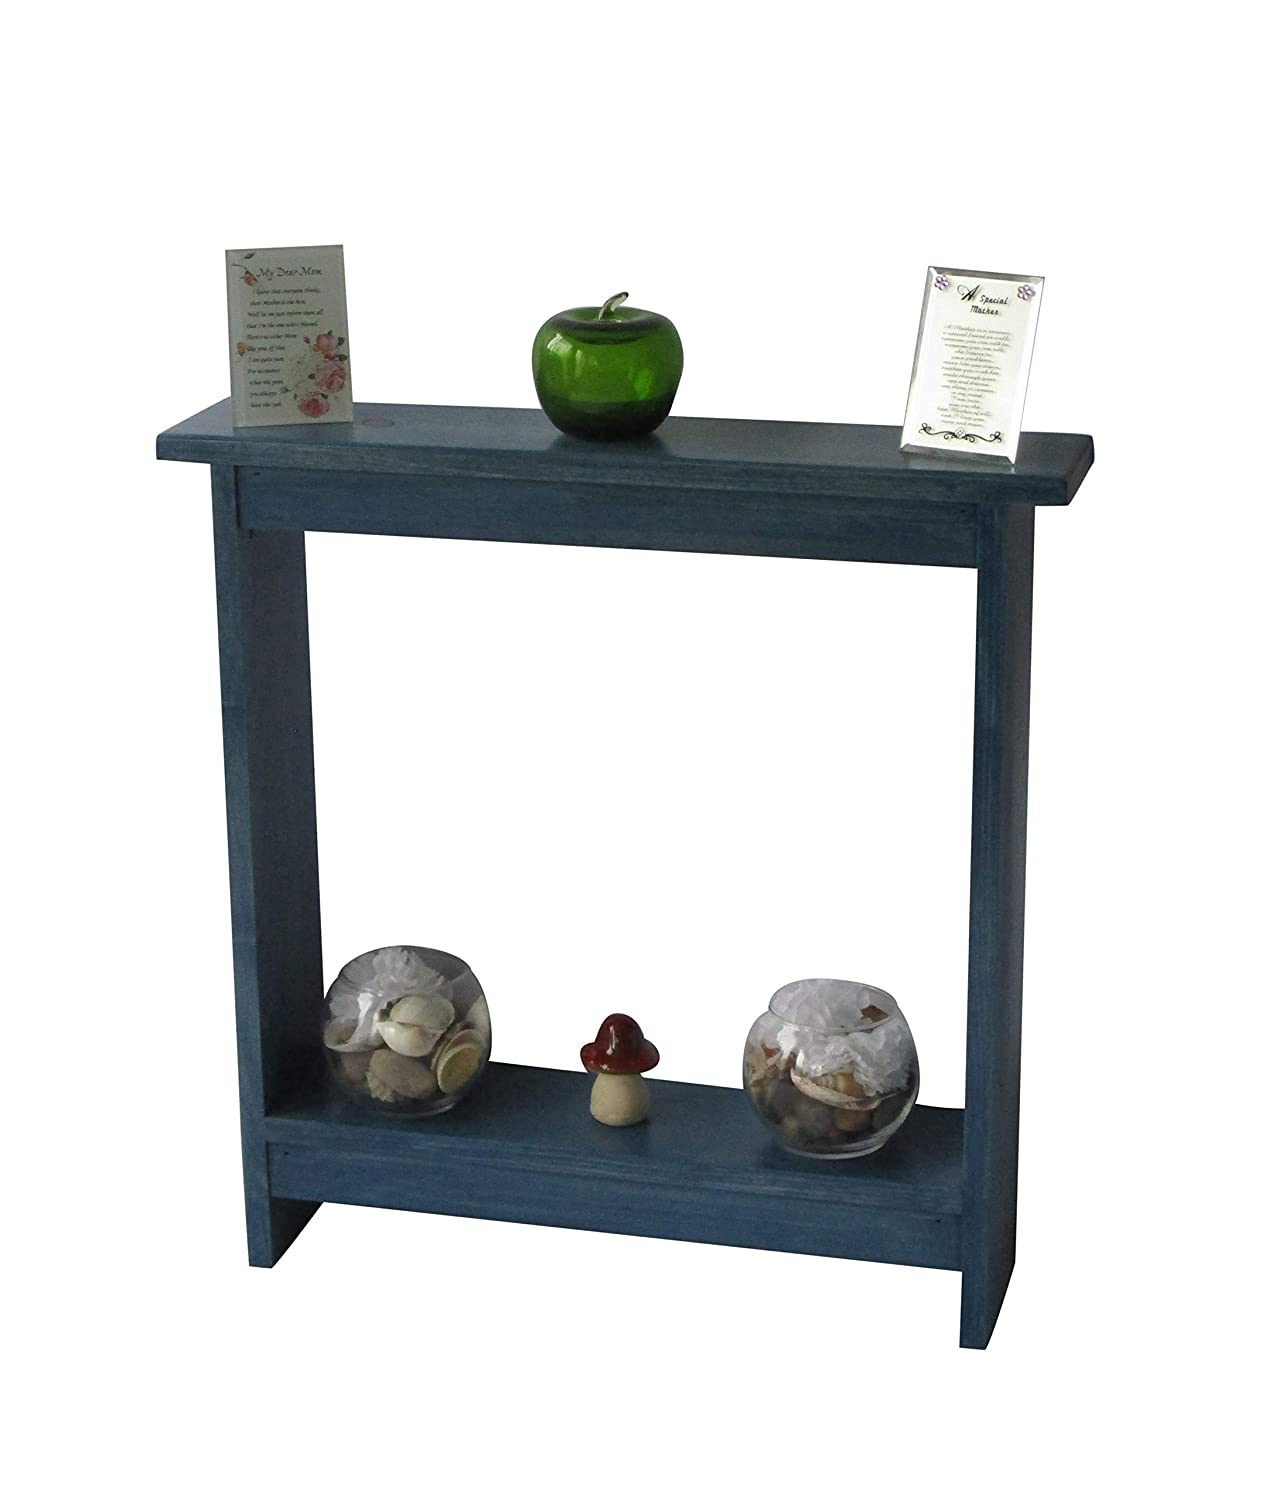 - Amazon.com: Narrow Console Table Rustic Accent Table Small